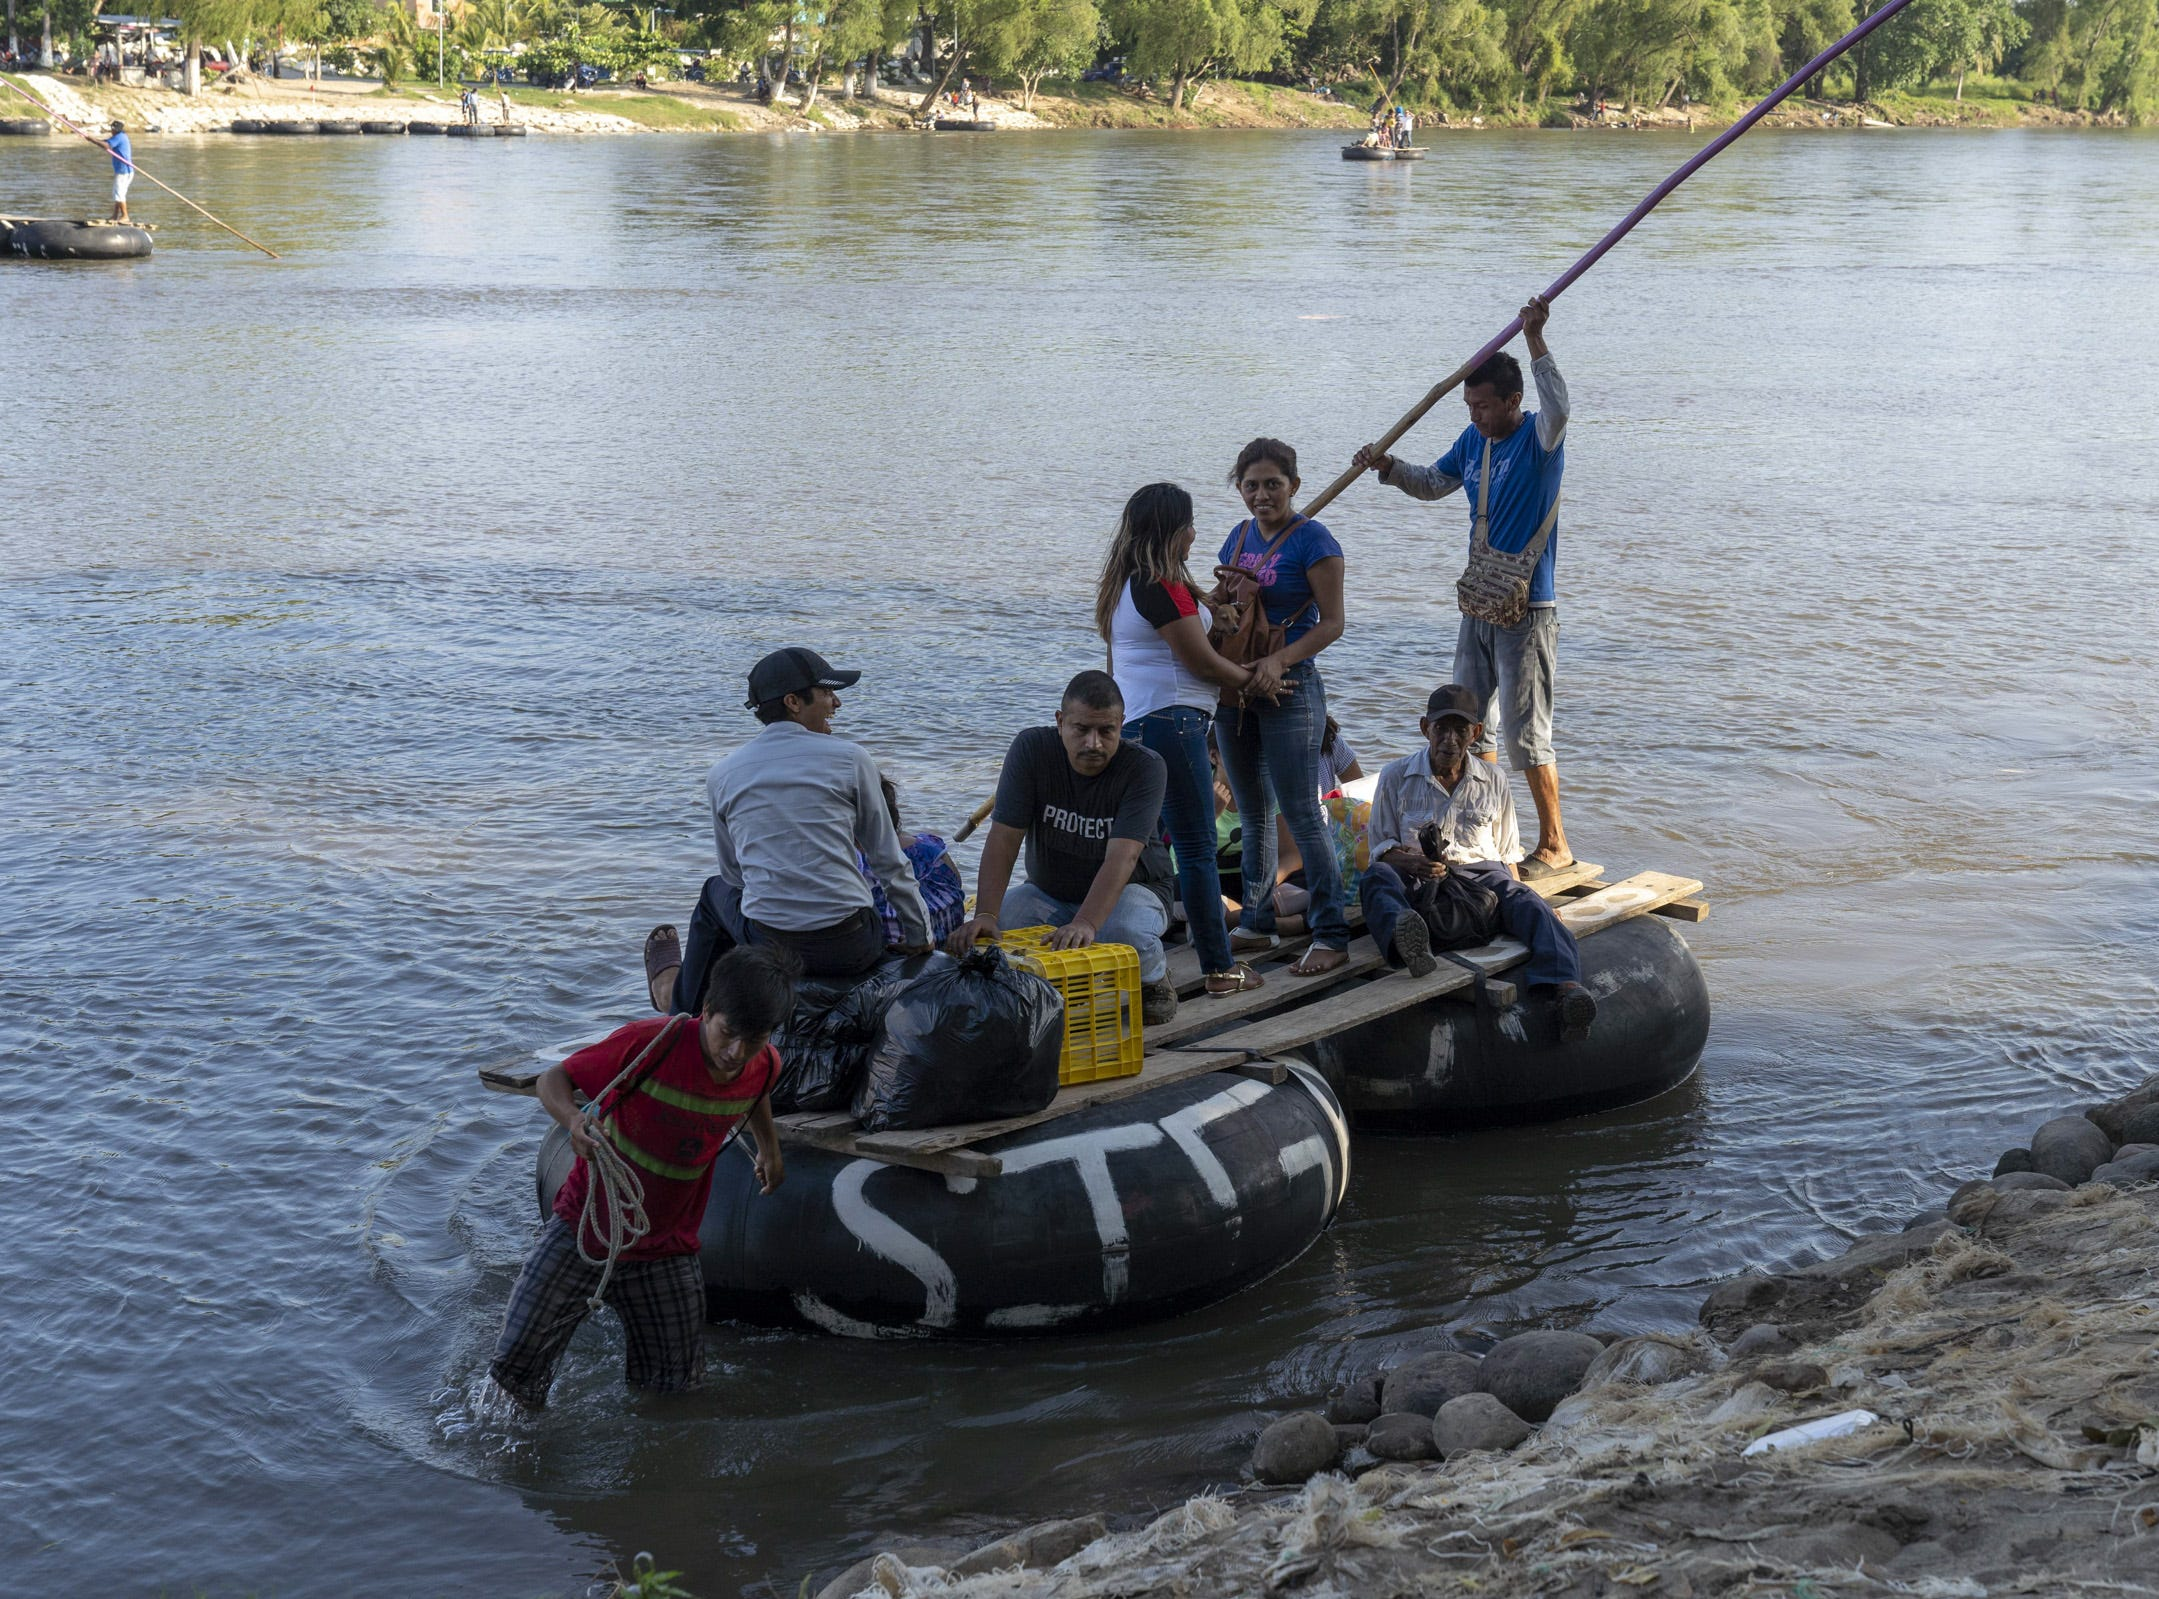 Border crossers from Guatemala pay money after crossing on a raft at Cuidad Hidalgo, Mexico.